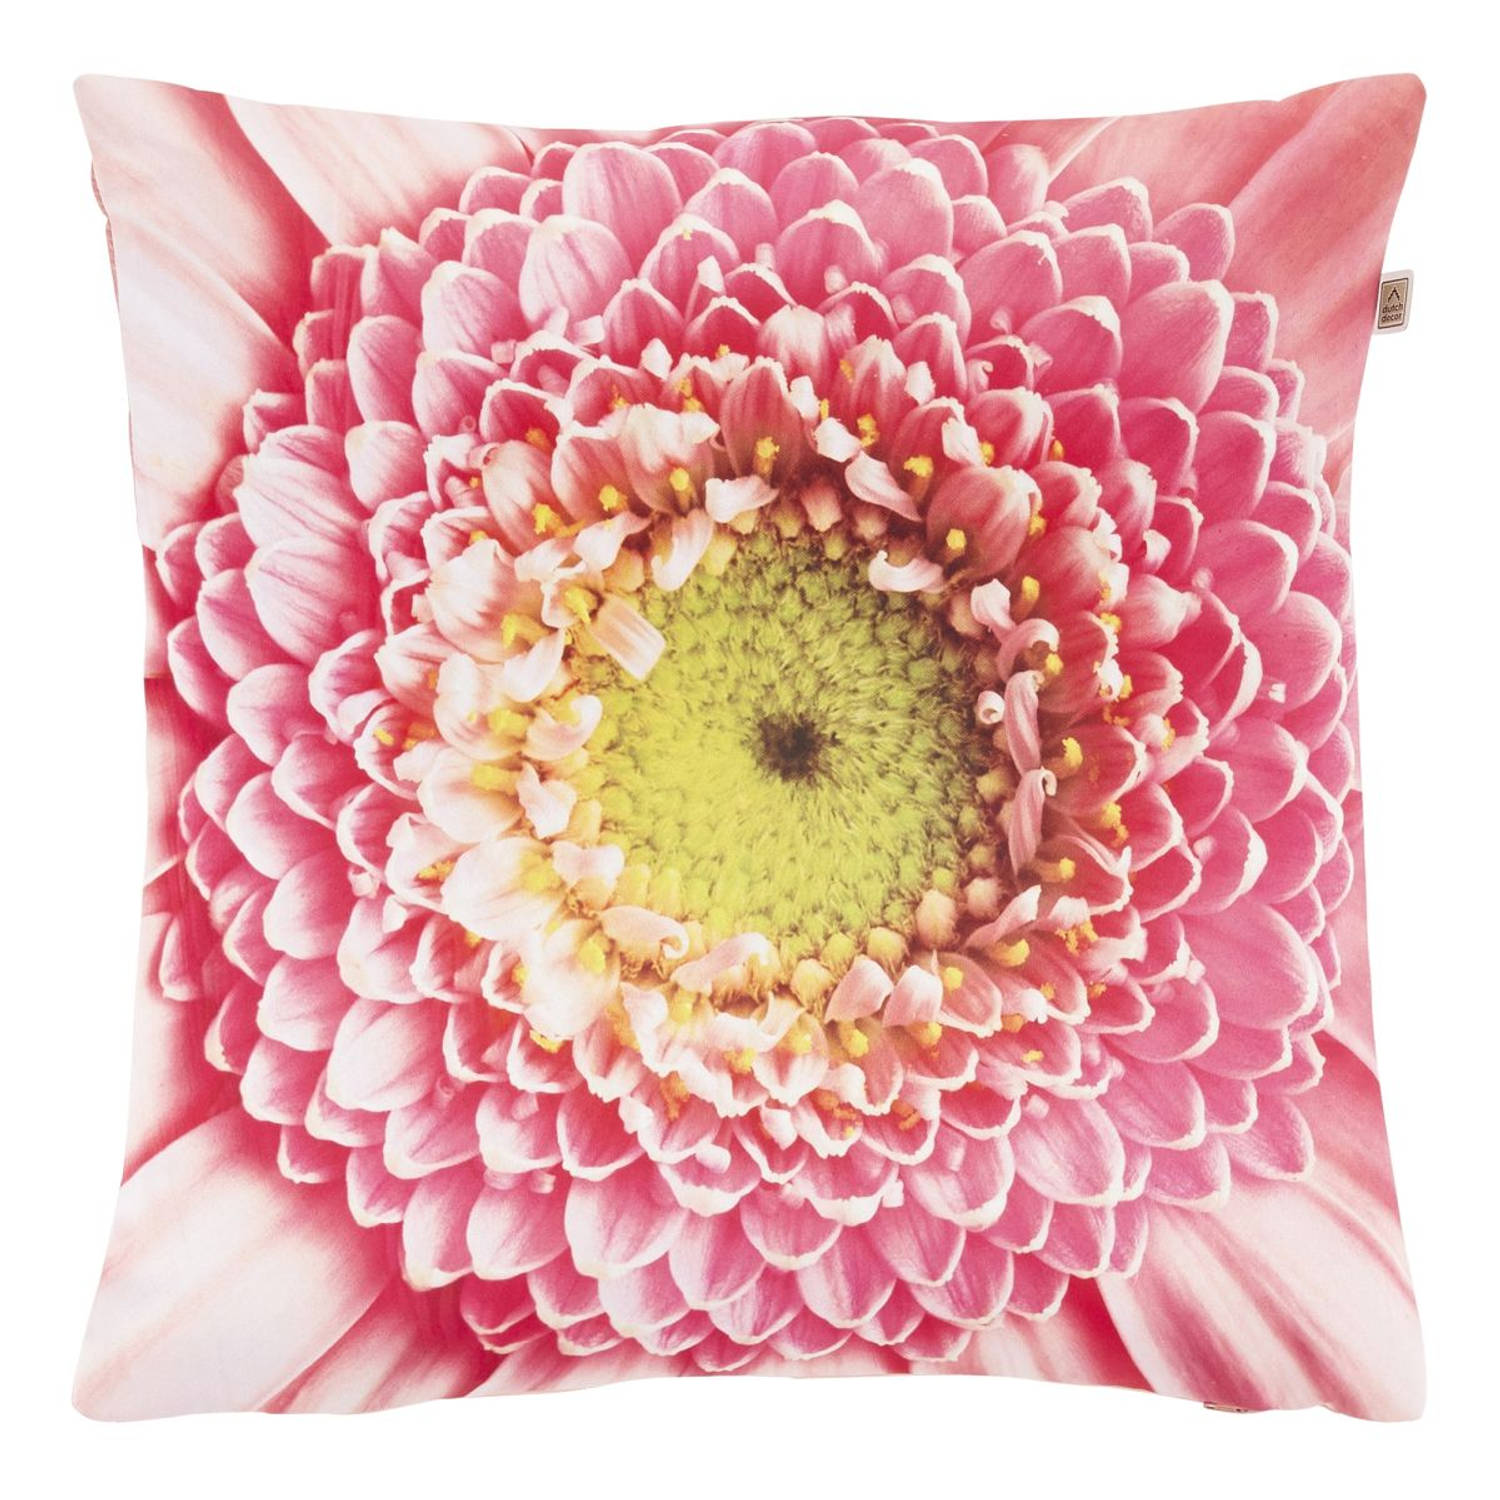 Dutch Decor Sierkussen Sindy 45x45 cm roze